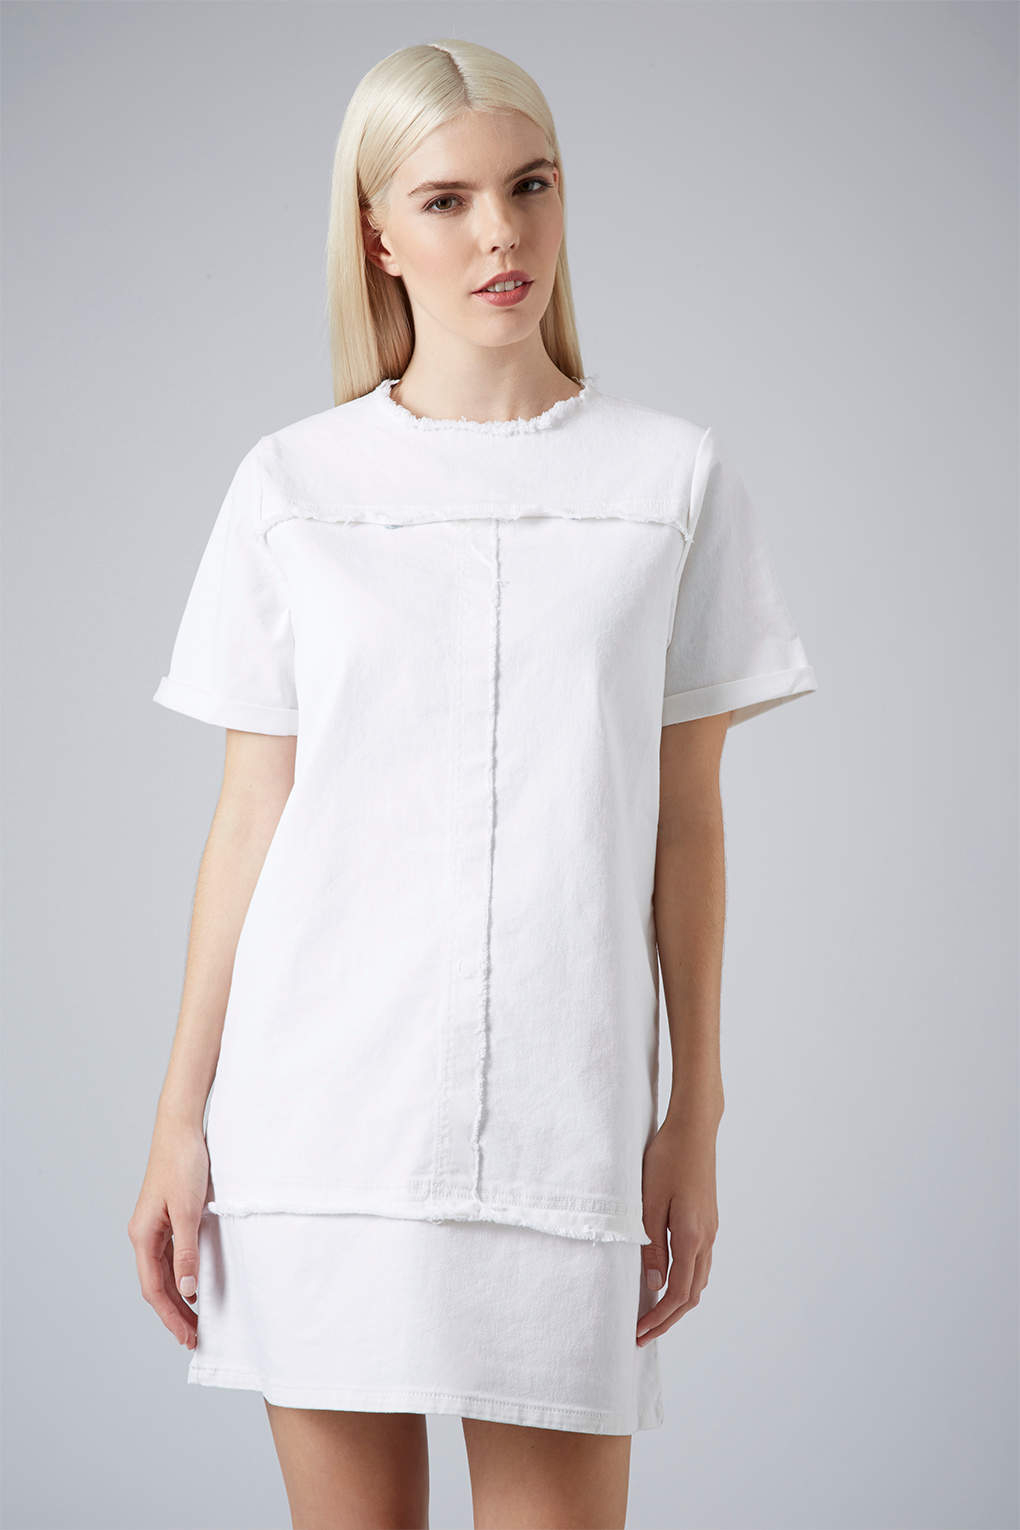 Shop our Collection of Women's White Denim Dresses at ciproprescription.ga for the Latest Designer Brands & Styles. FREE SHIPPING AVAILABLE!